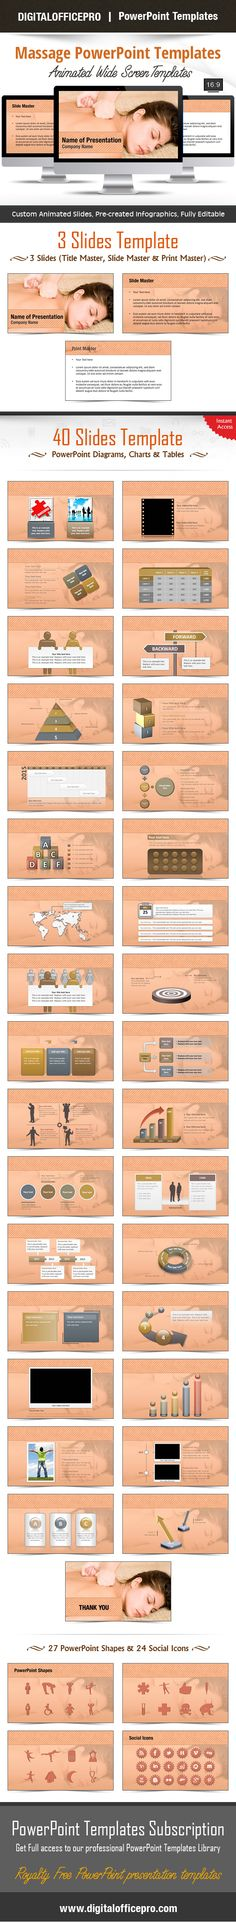 Web Professionals PowerPoint Template Backgrounds Template and - office powerpoint template